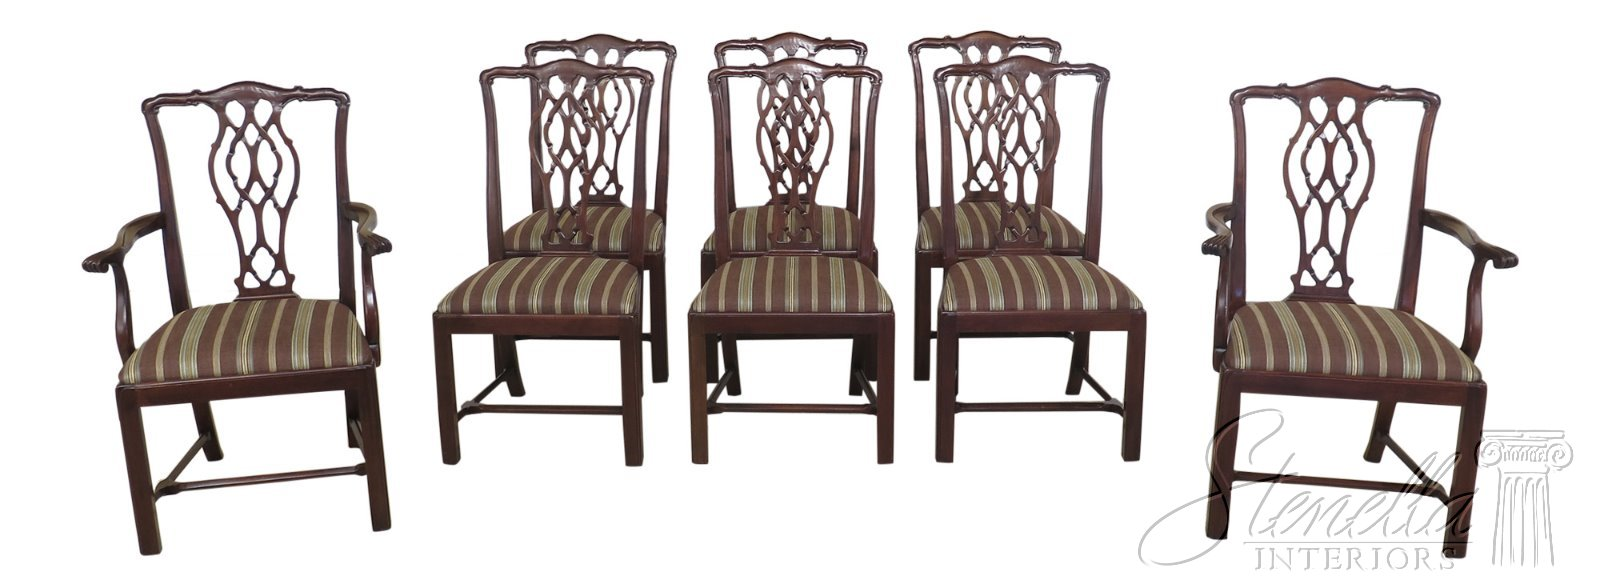 Swell Details About L47714Ec Set Of 8 Hickory Chair Co Mahogany Chippendale Dining Chairs Forskolin Free Trial Chair Design Images Forskolin Free Trialorg